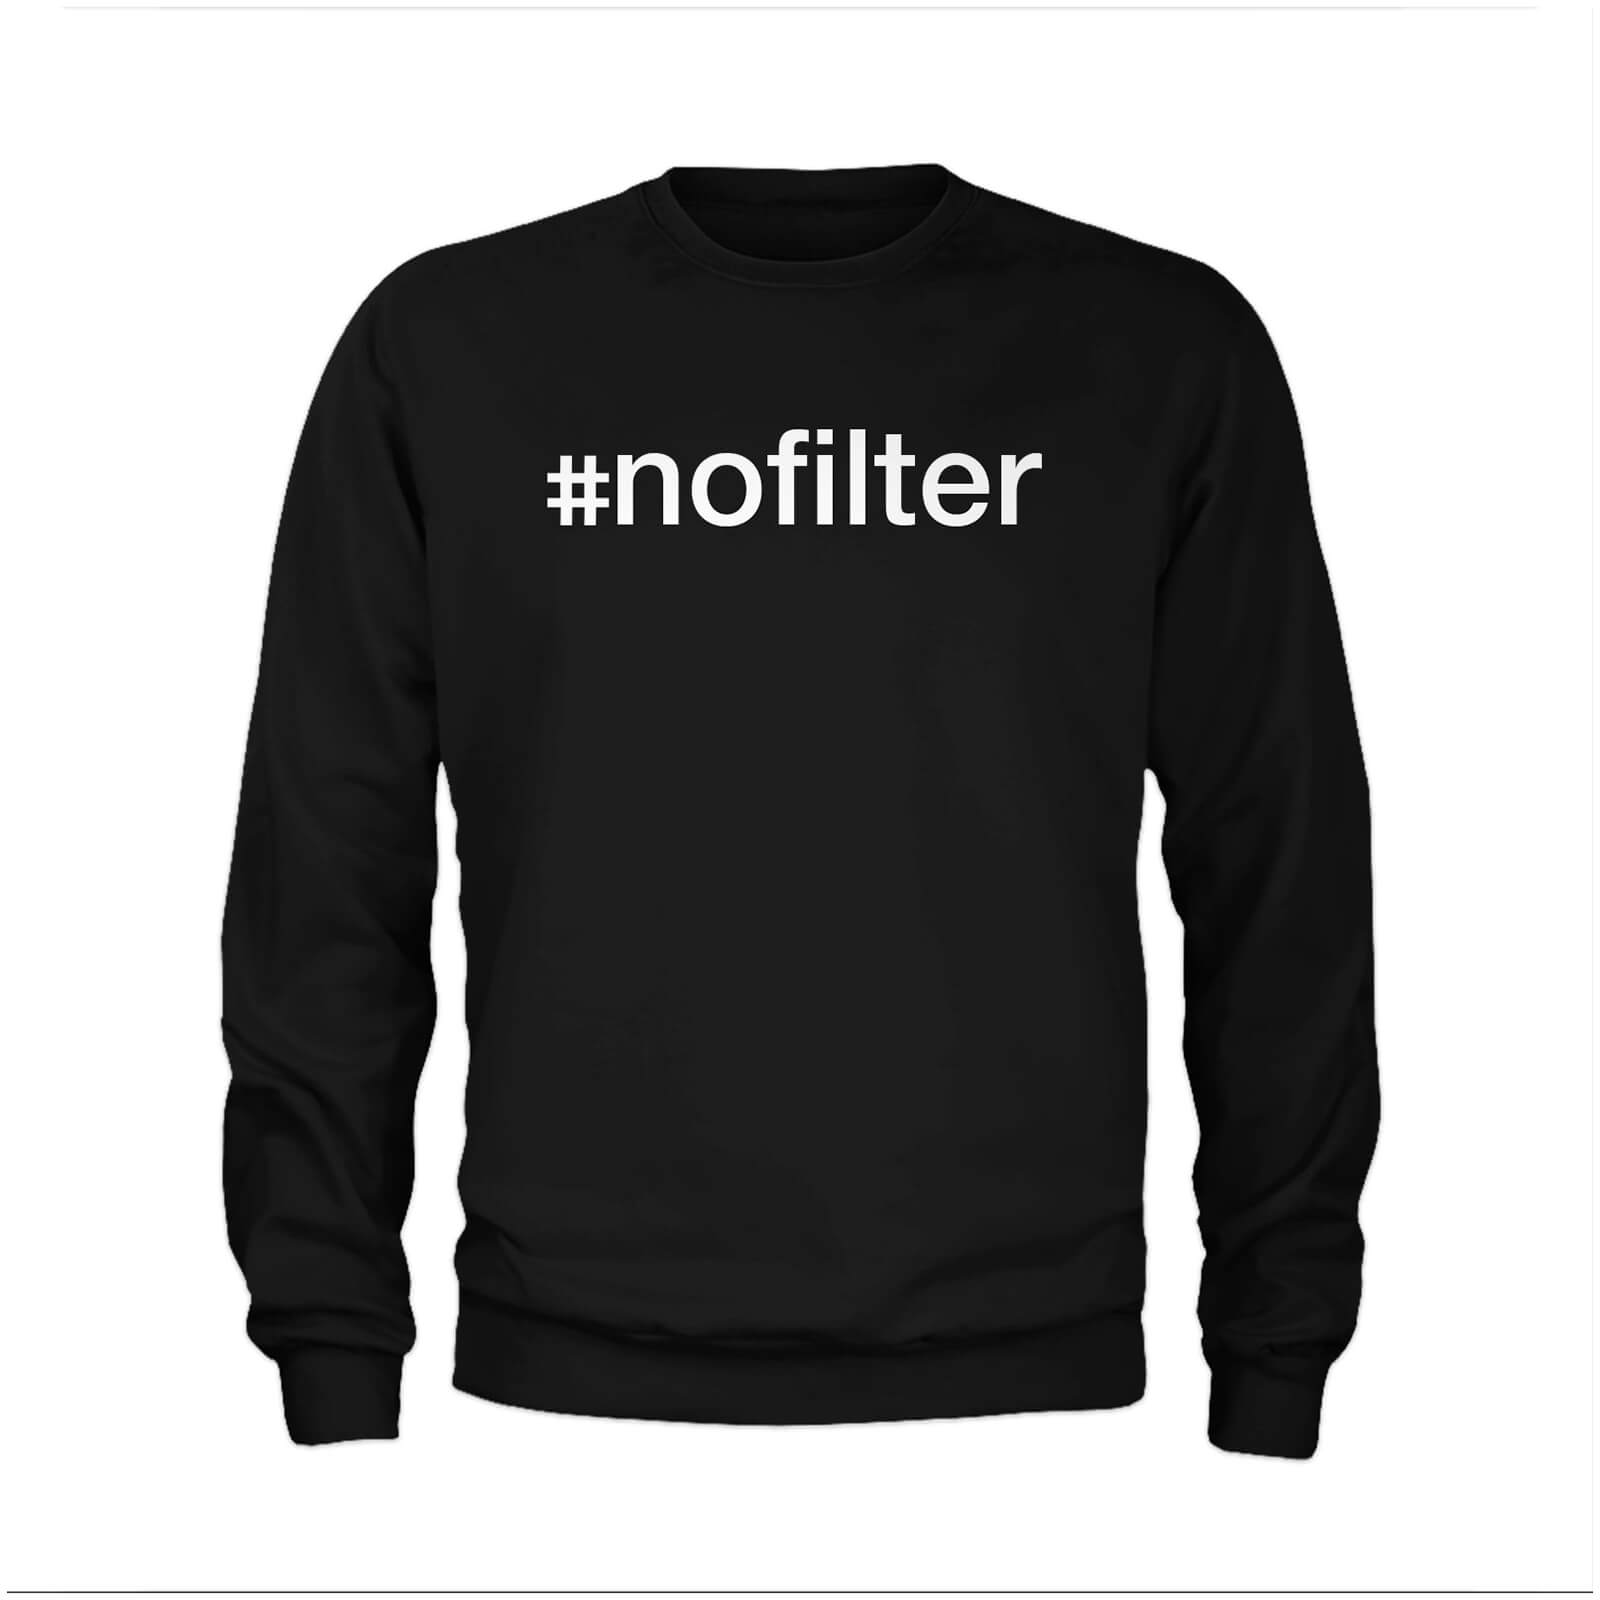 #Nofilter Slogan Sweatshirt - Black